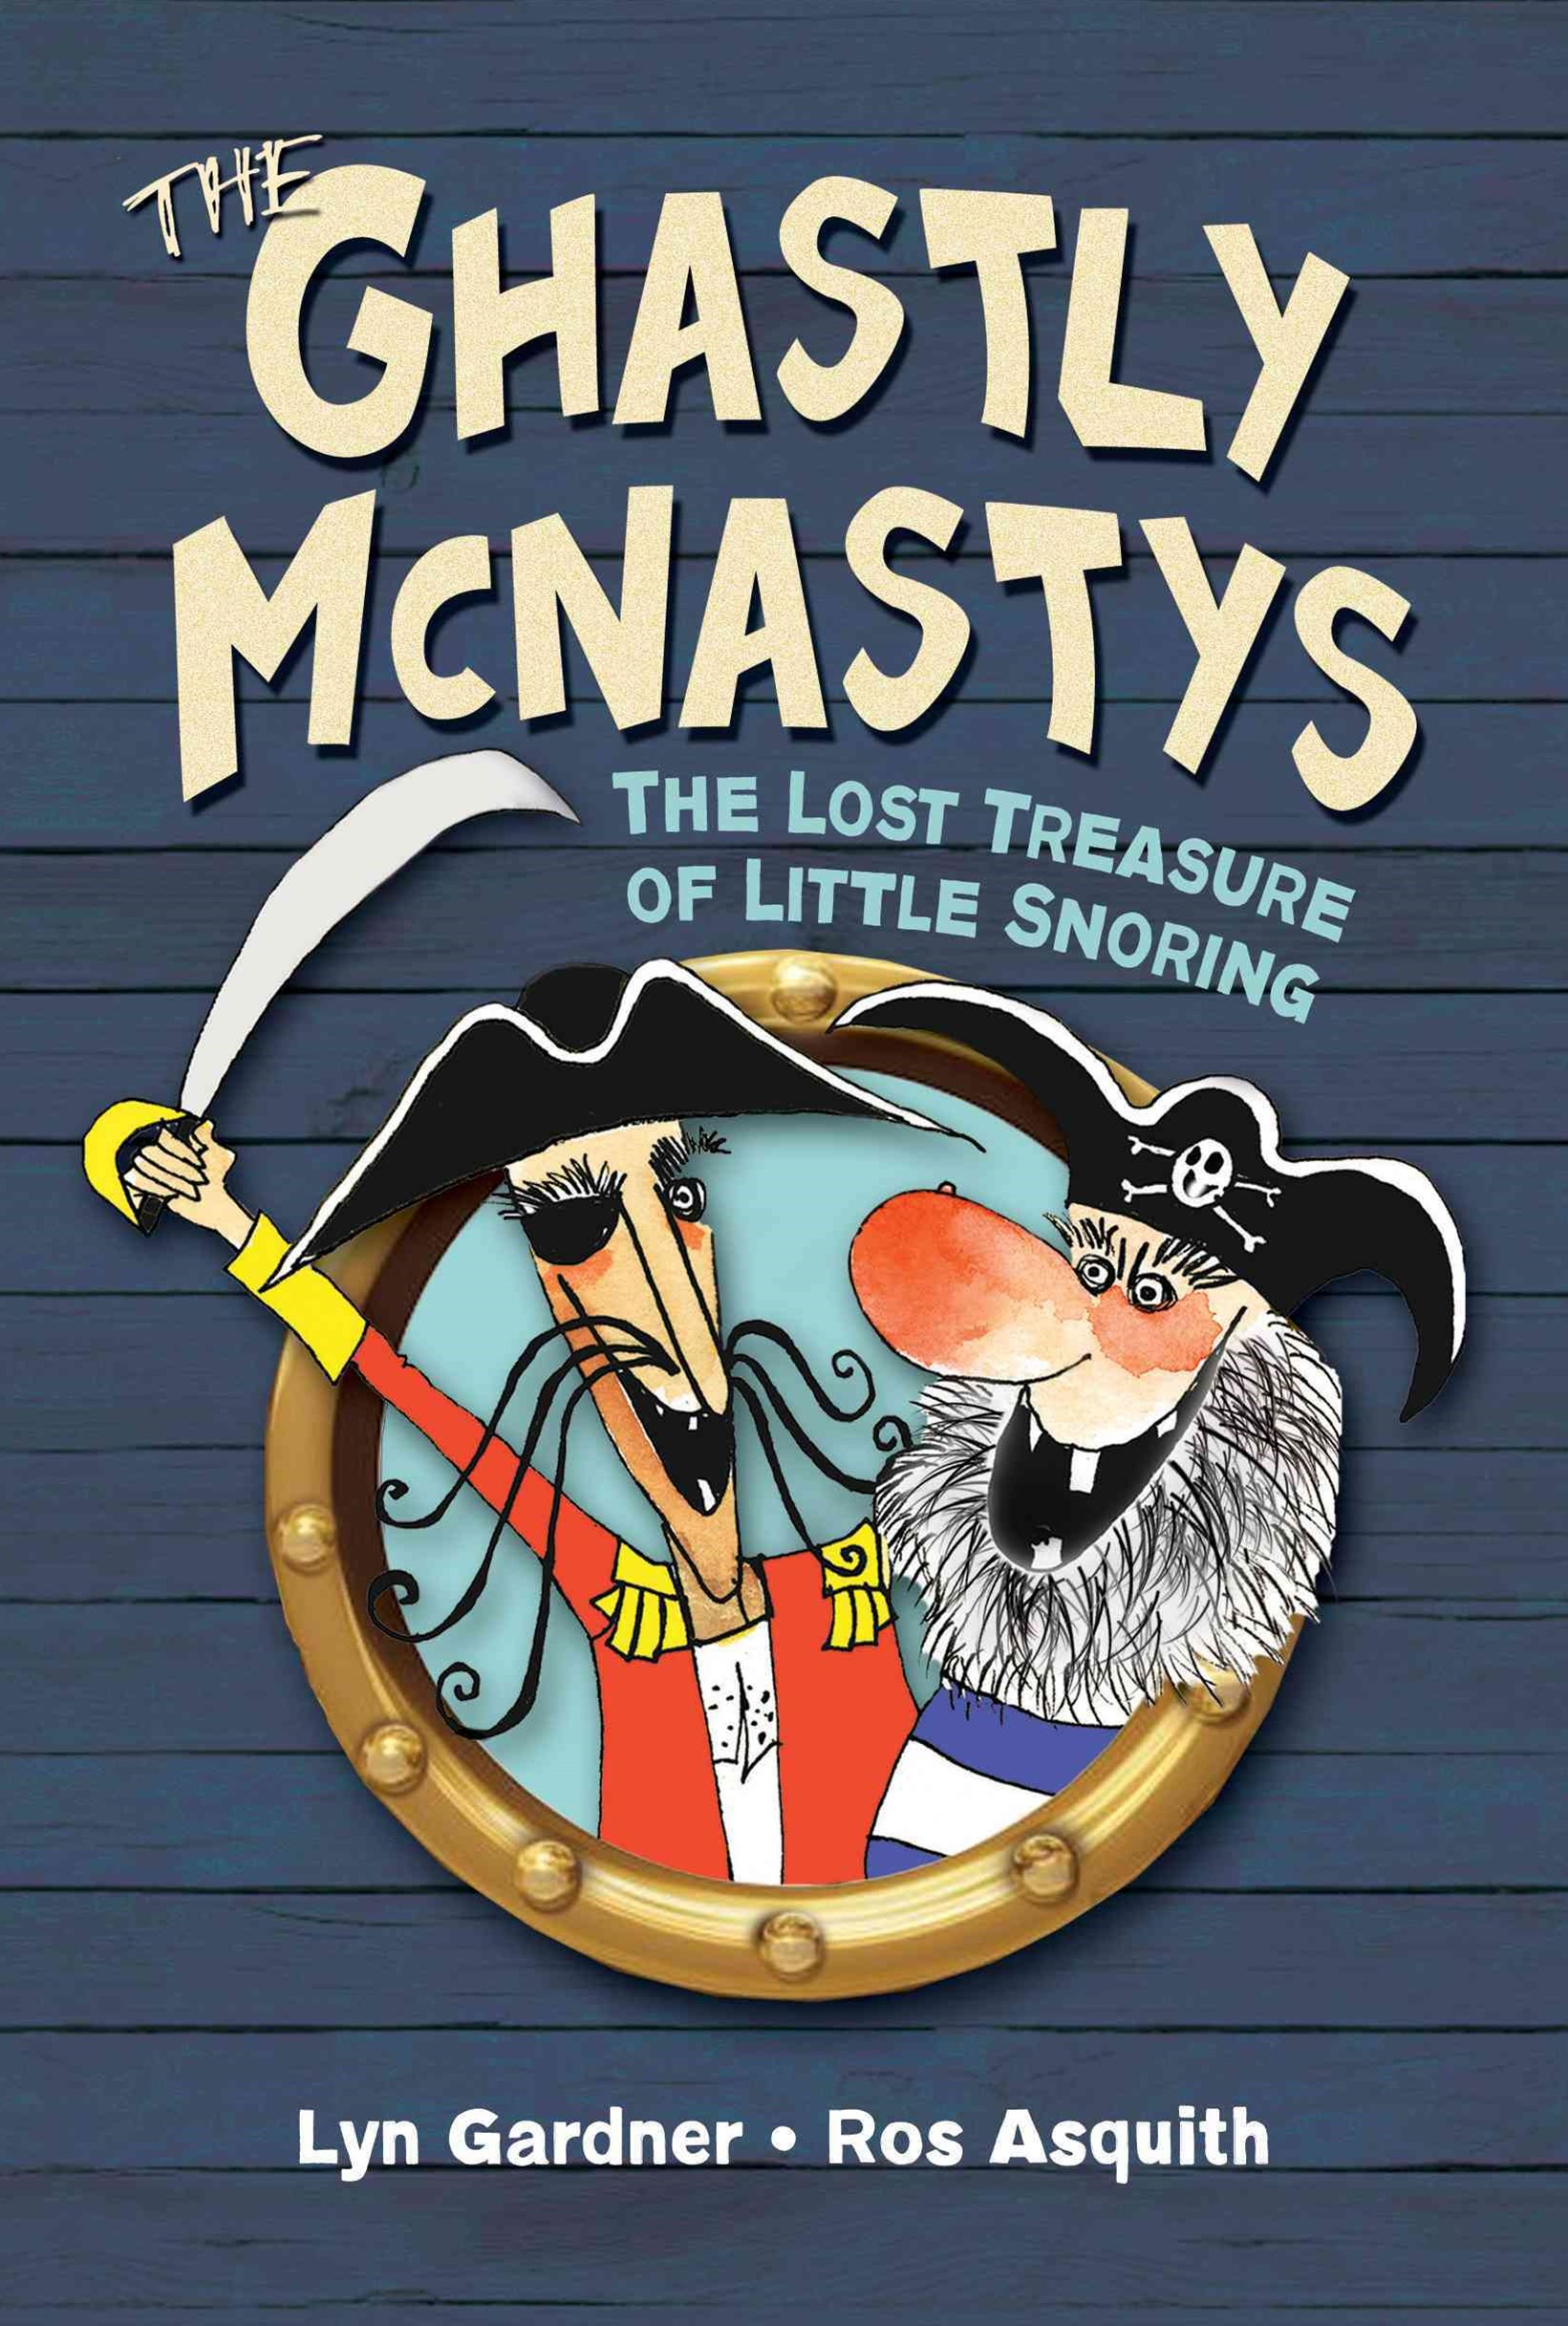 The Ghastly Mcnastys: the Lost Treasure of Little Snoring